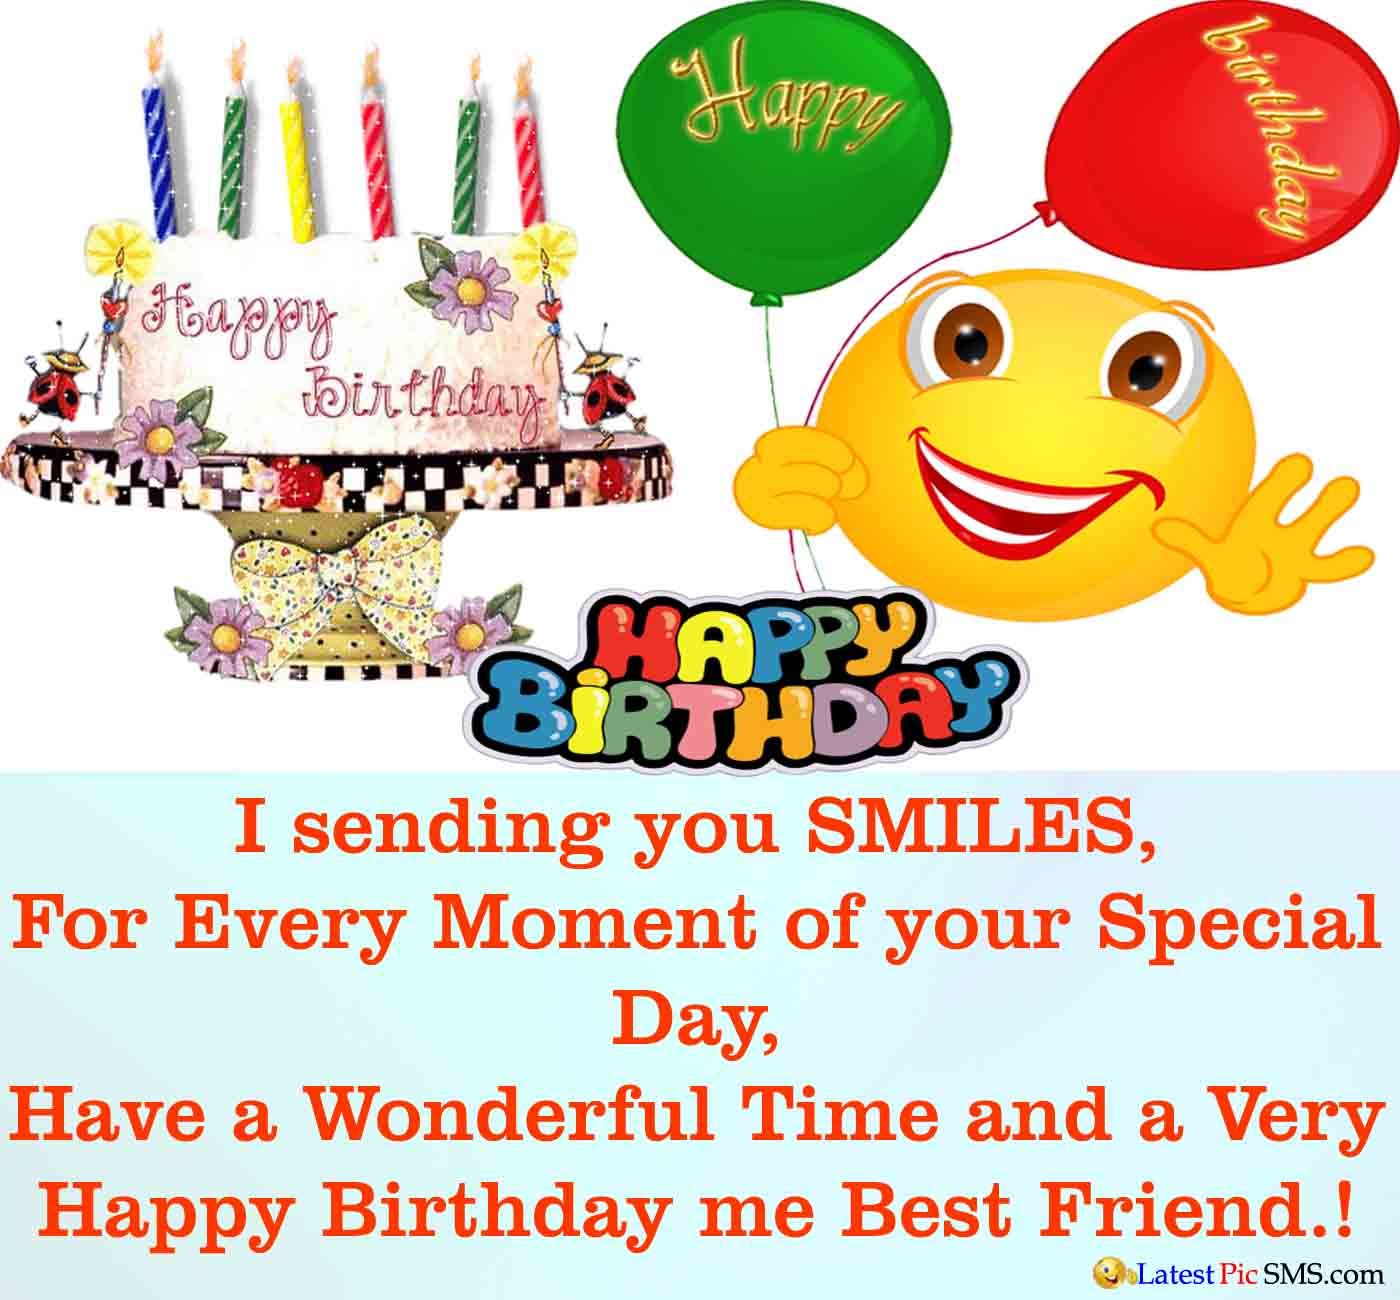 happy birthday best friend quotes funny ; Funny%252BHappy%252BBirthday%252BWishes%252Bfor%252BBest%252BFriend%252Bwith%252BImages%252B%2525285%252529